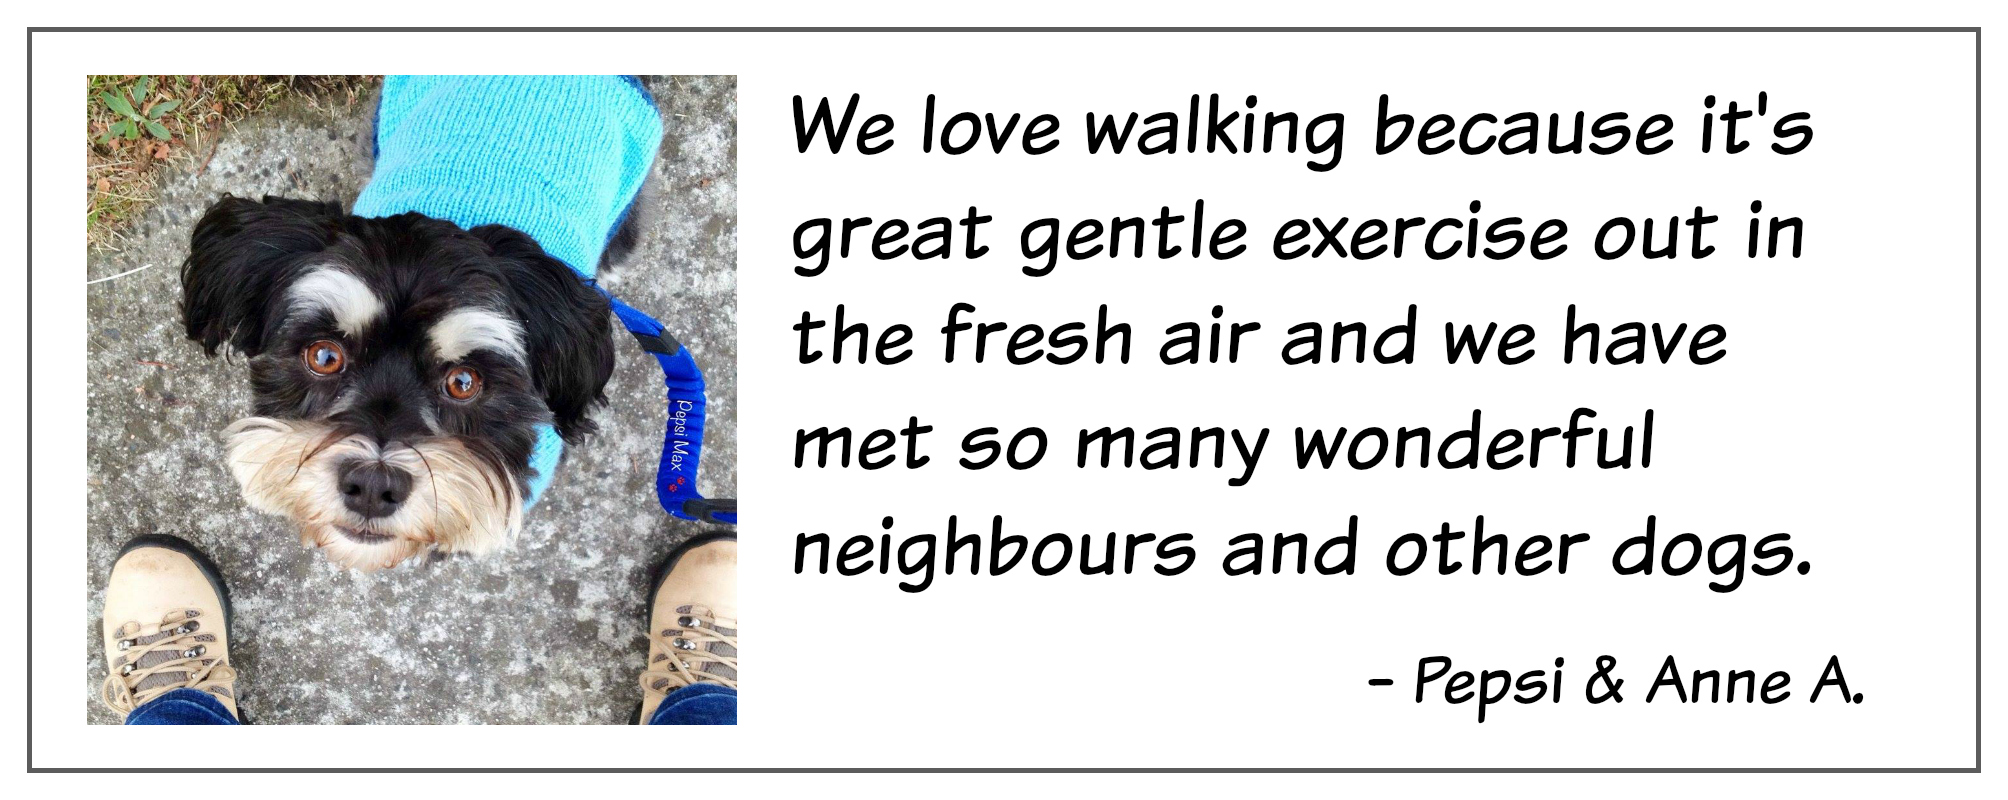 Dog walking quote